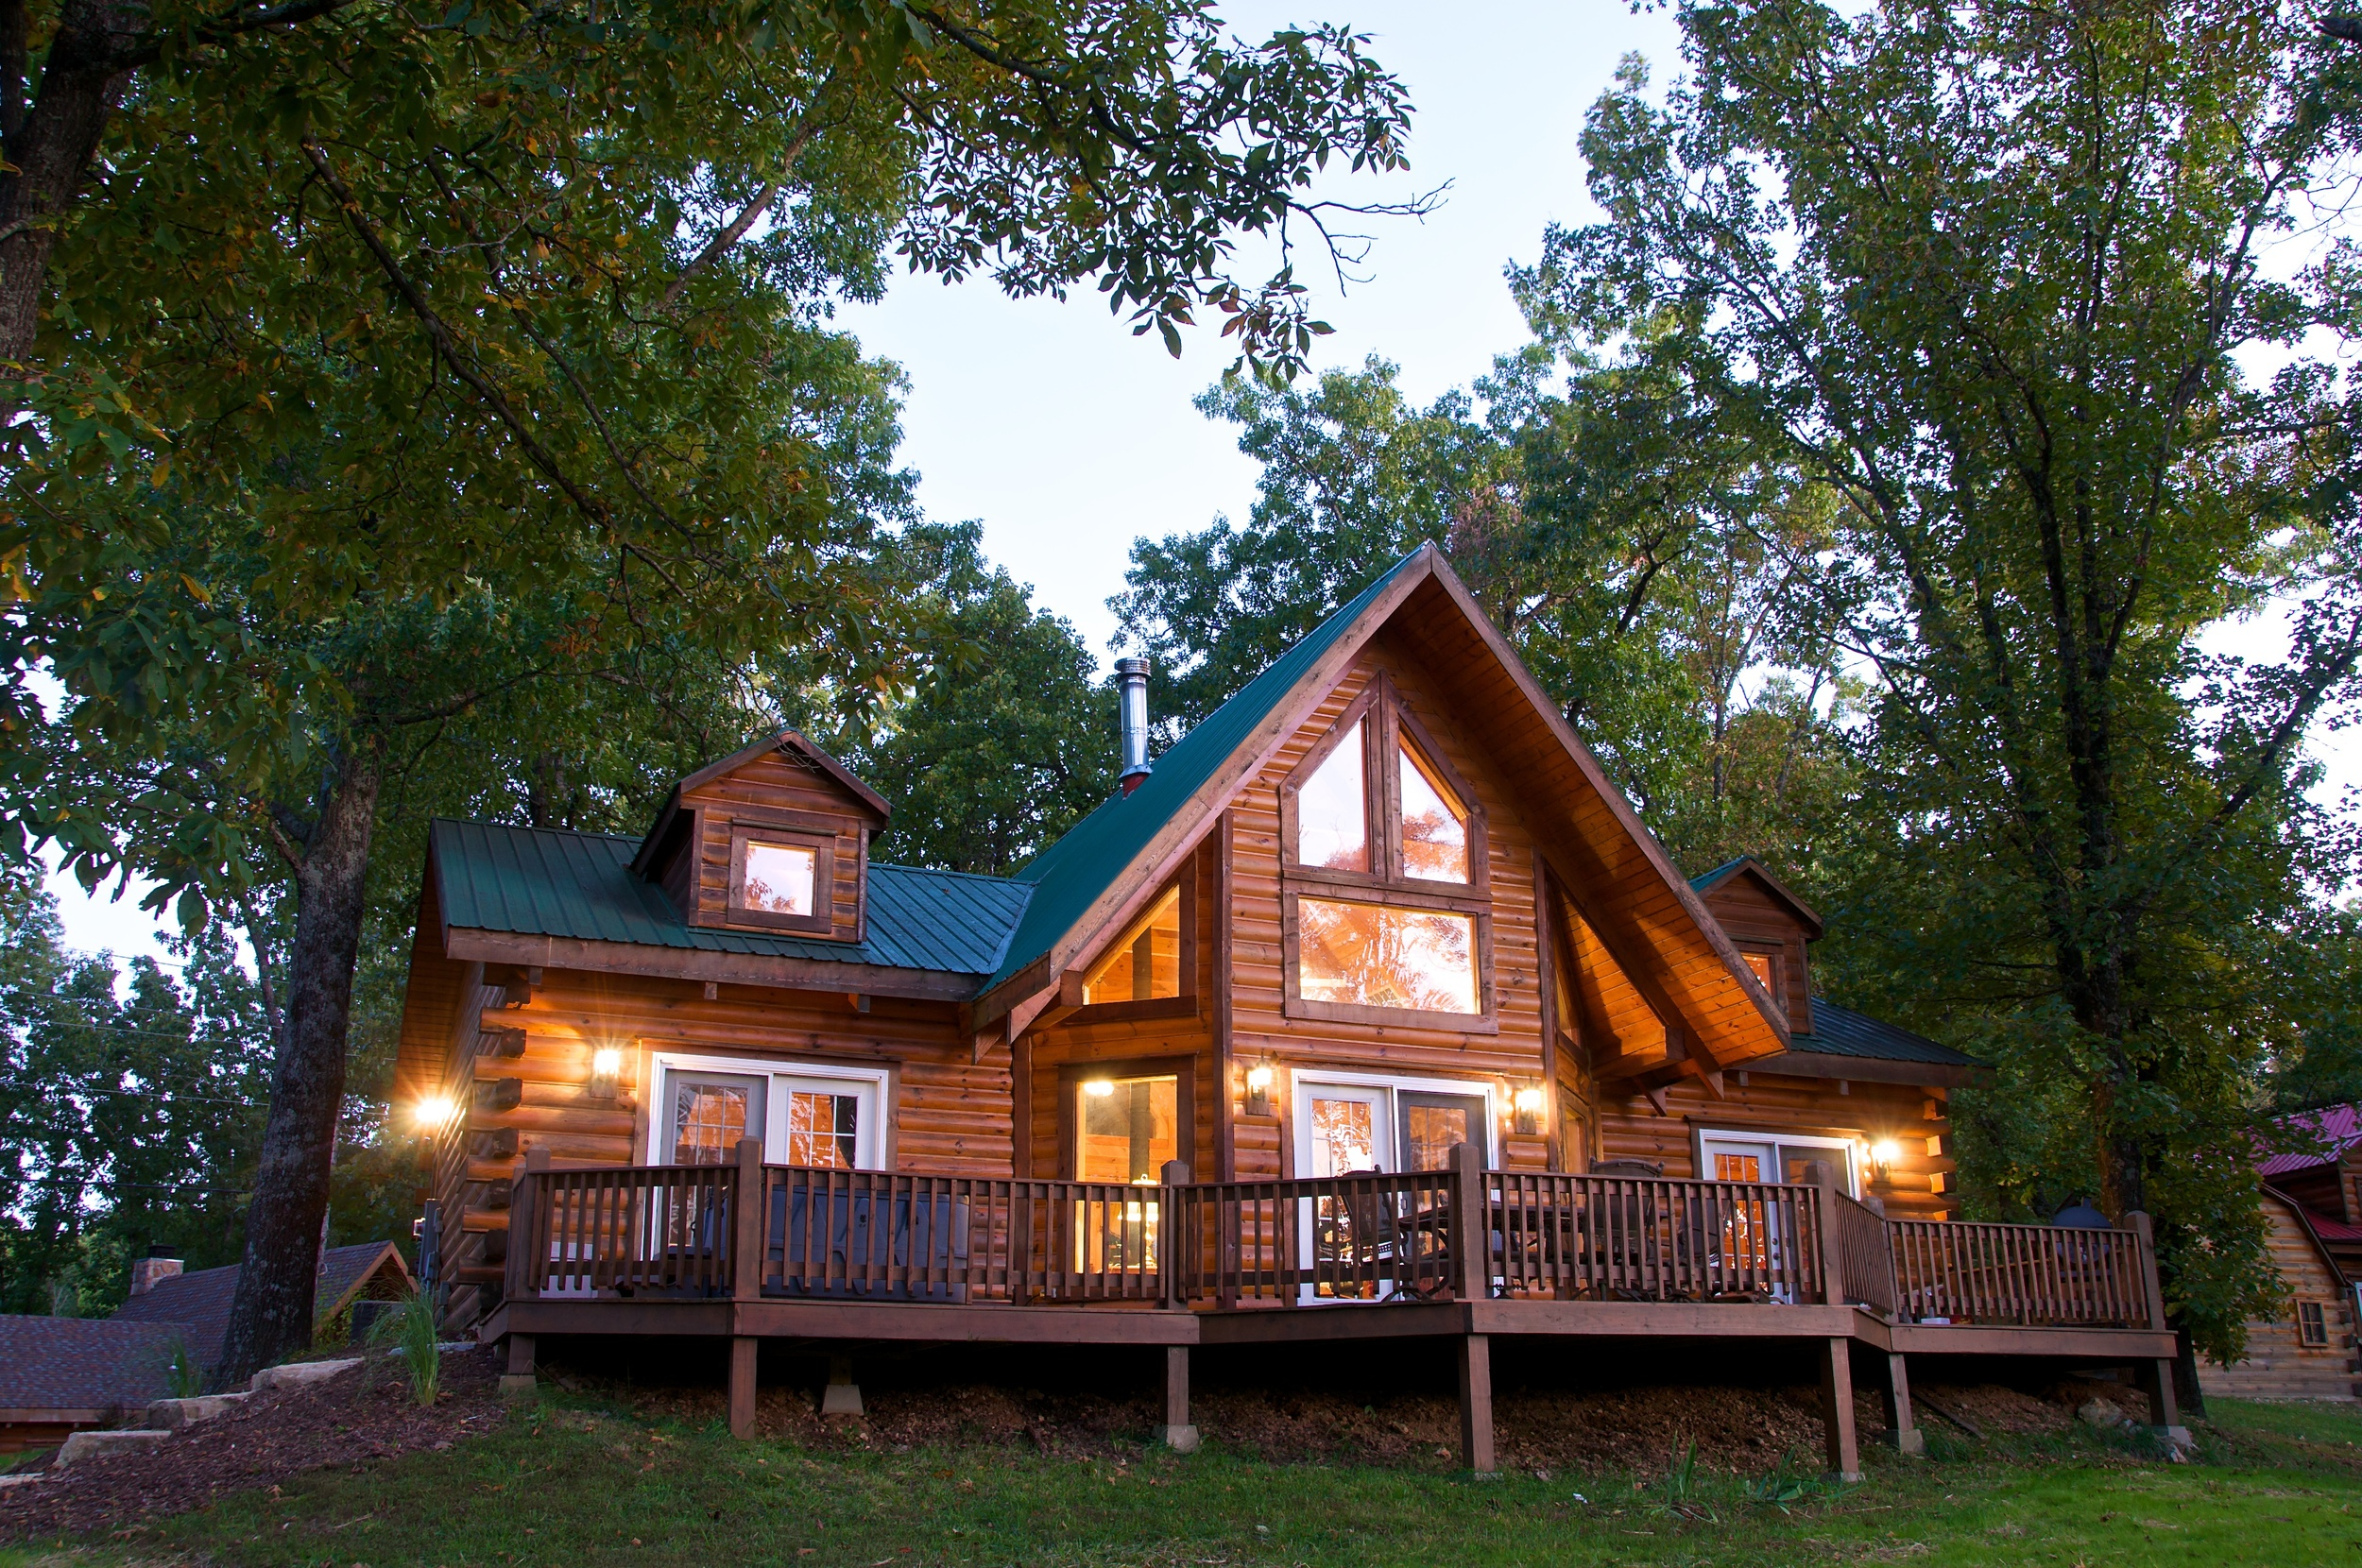 decorating about cabins lake designing rentals cabin decoration with ideas design the home of stylish furniture remodel ozarks